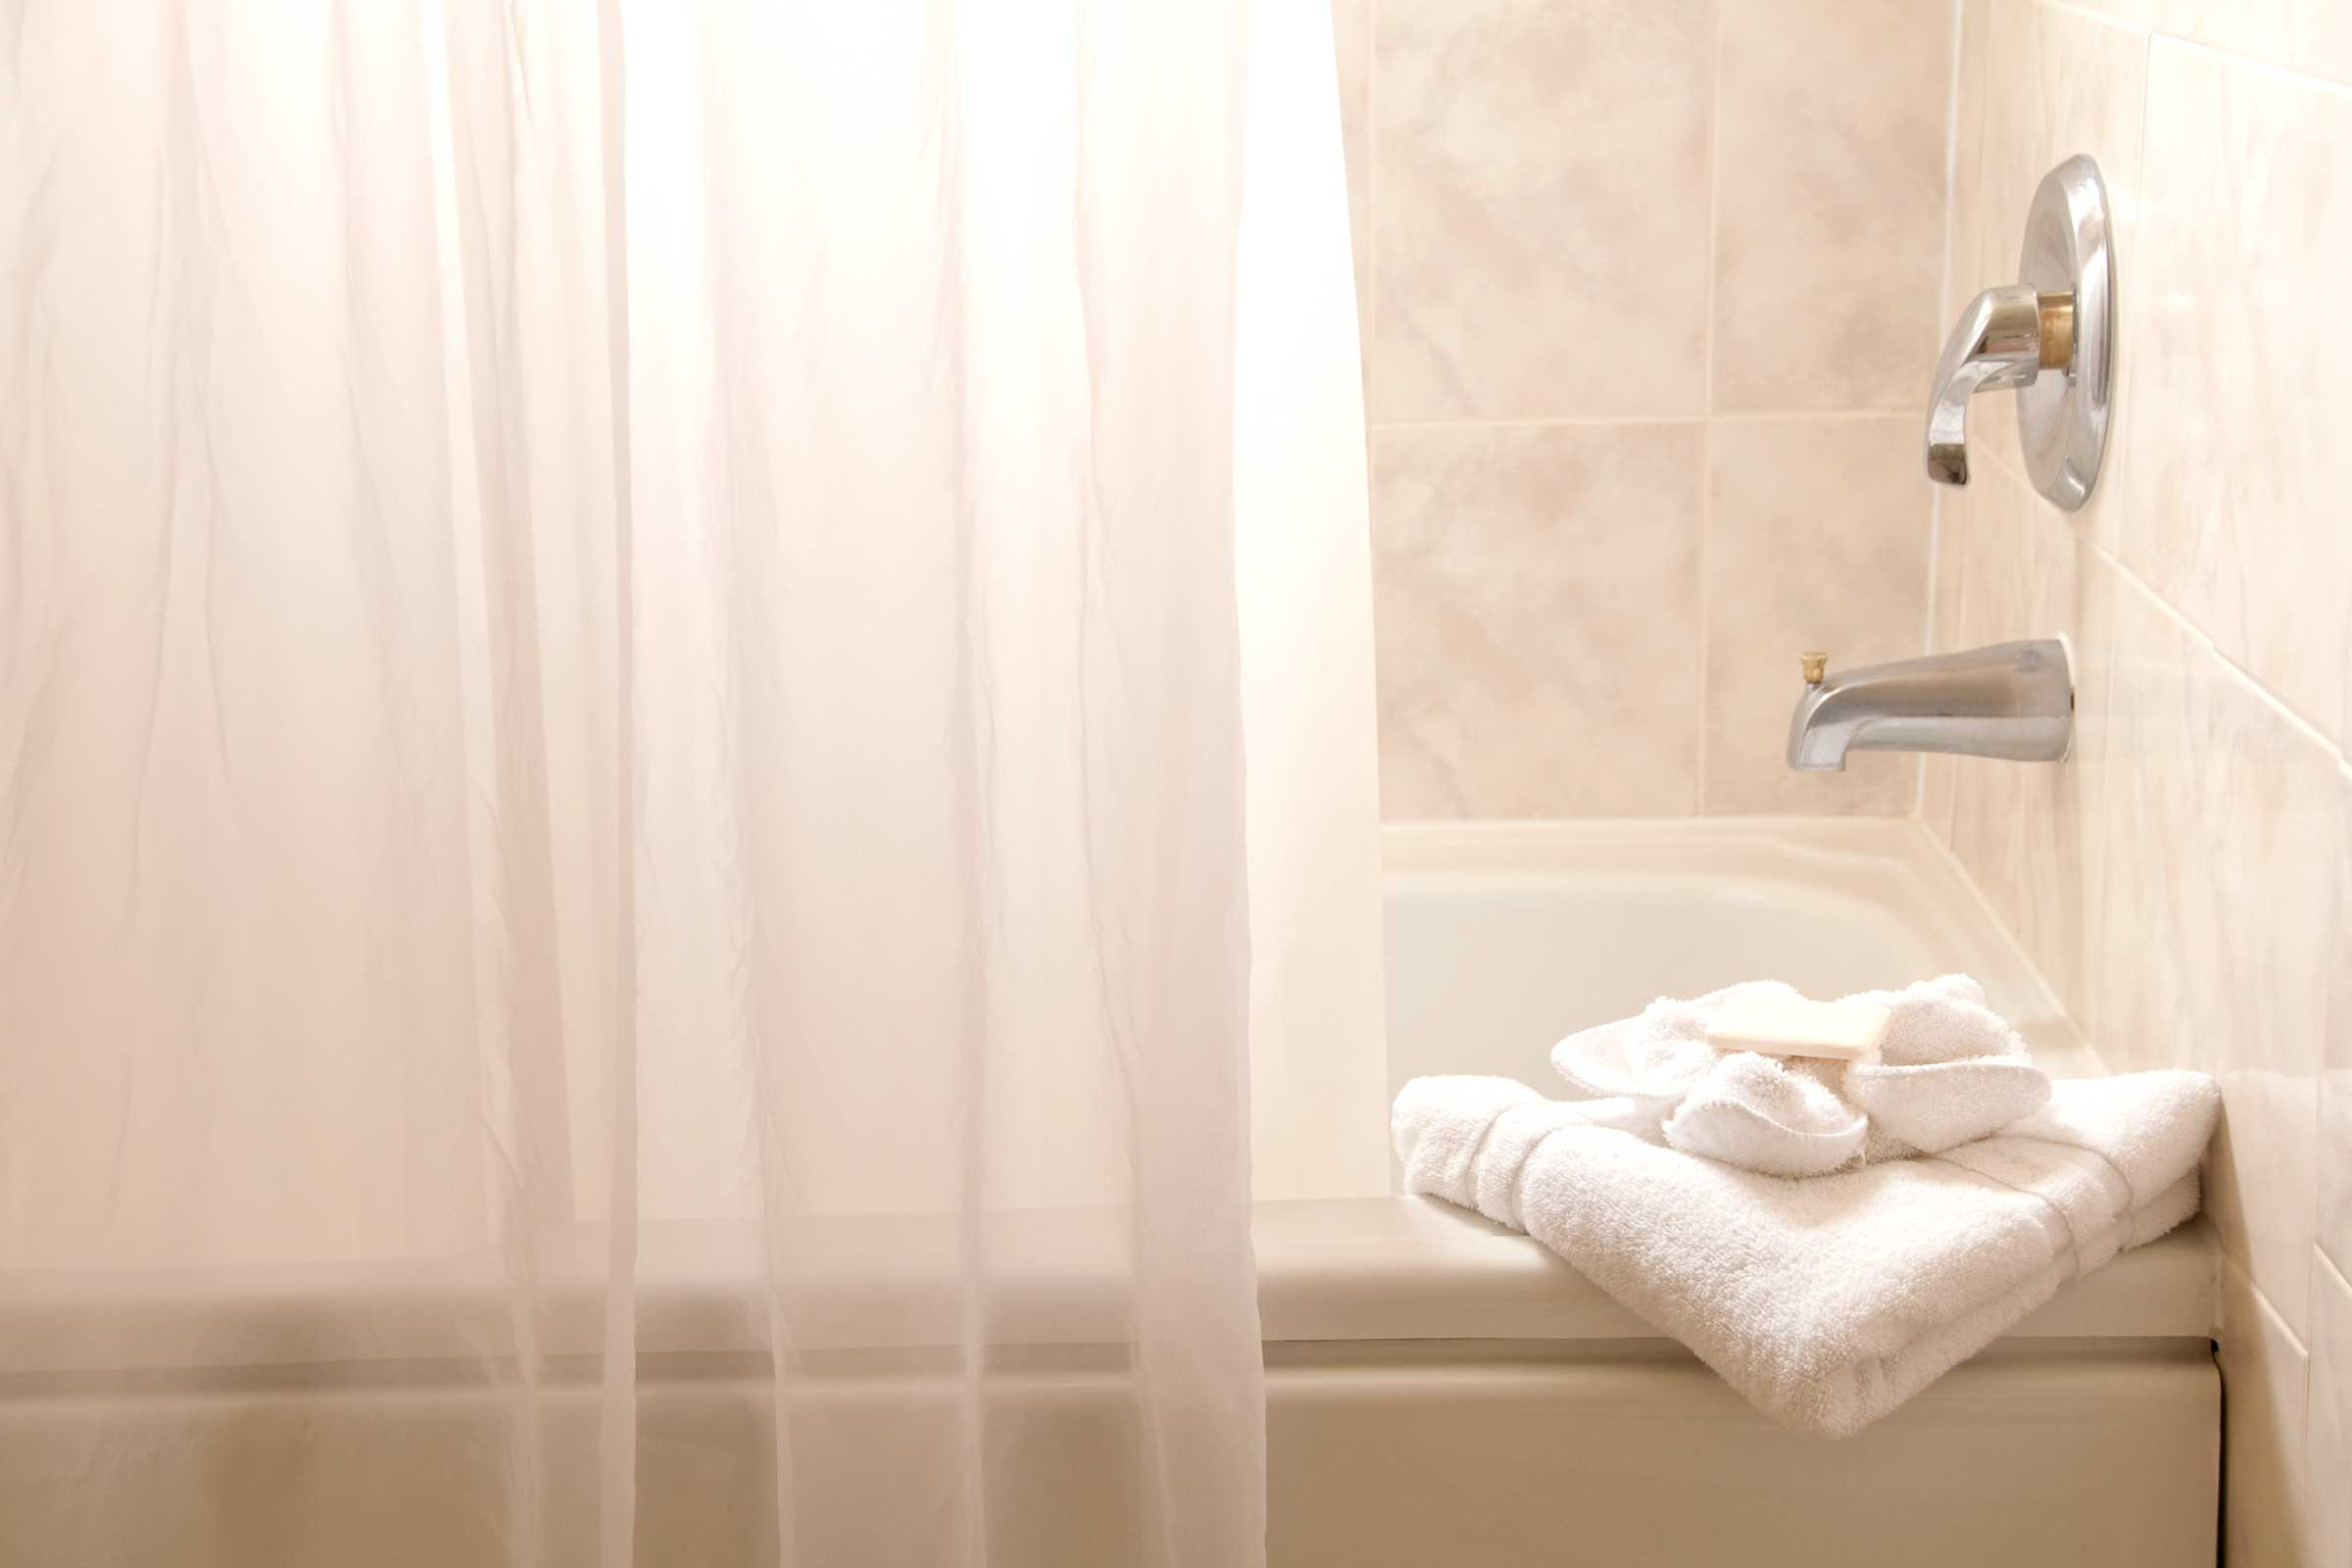 Wash the shower curtain in hot water and bleach every month